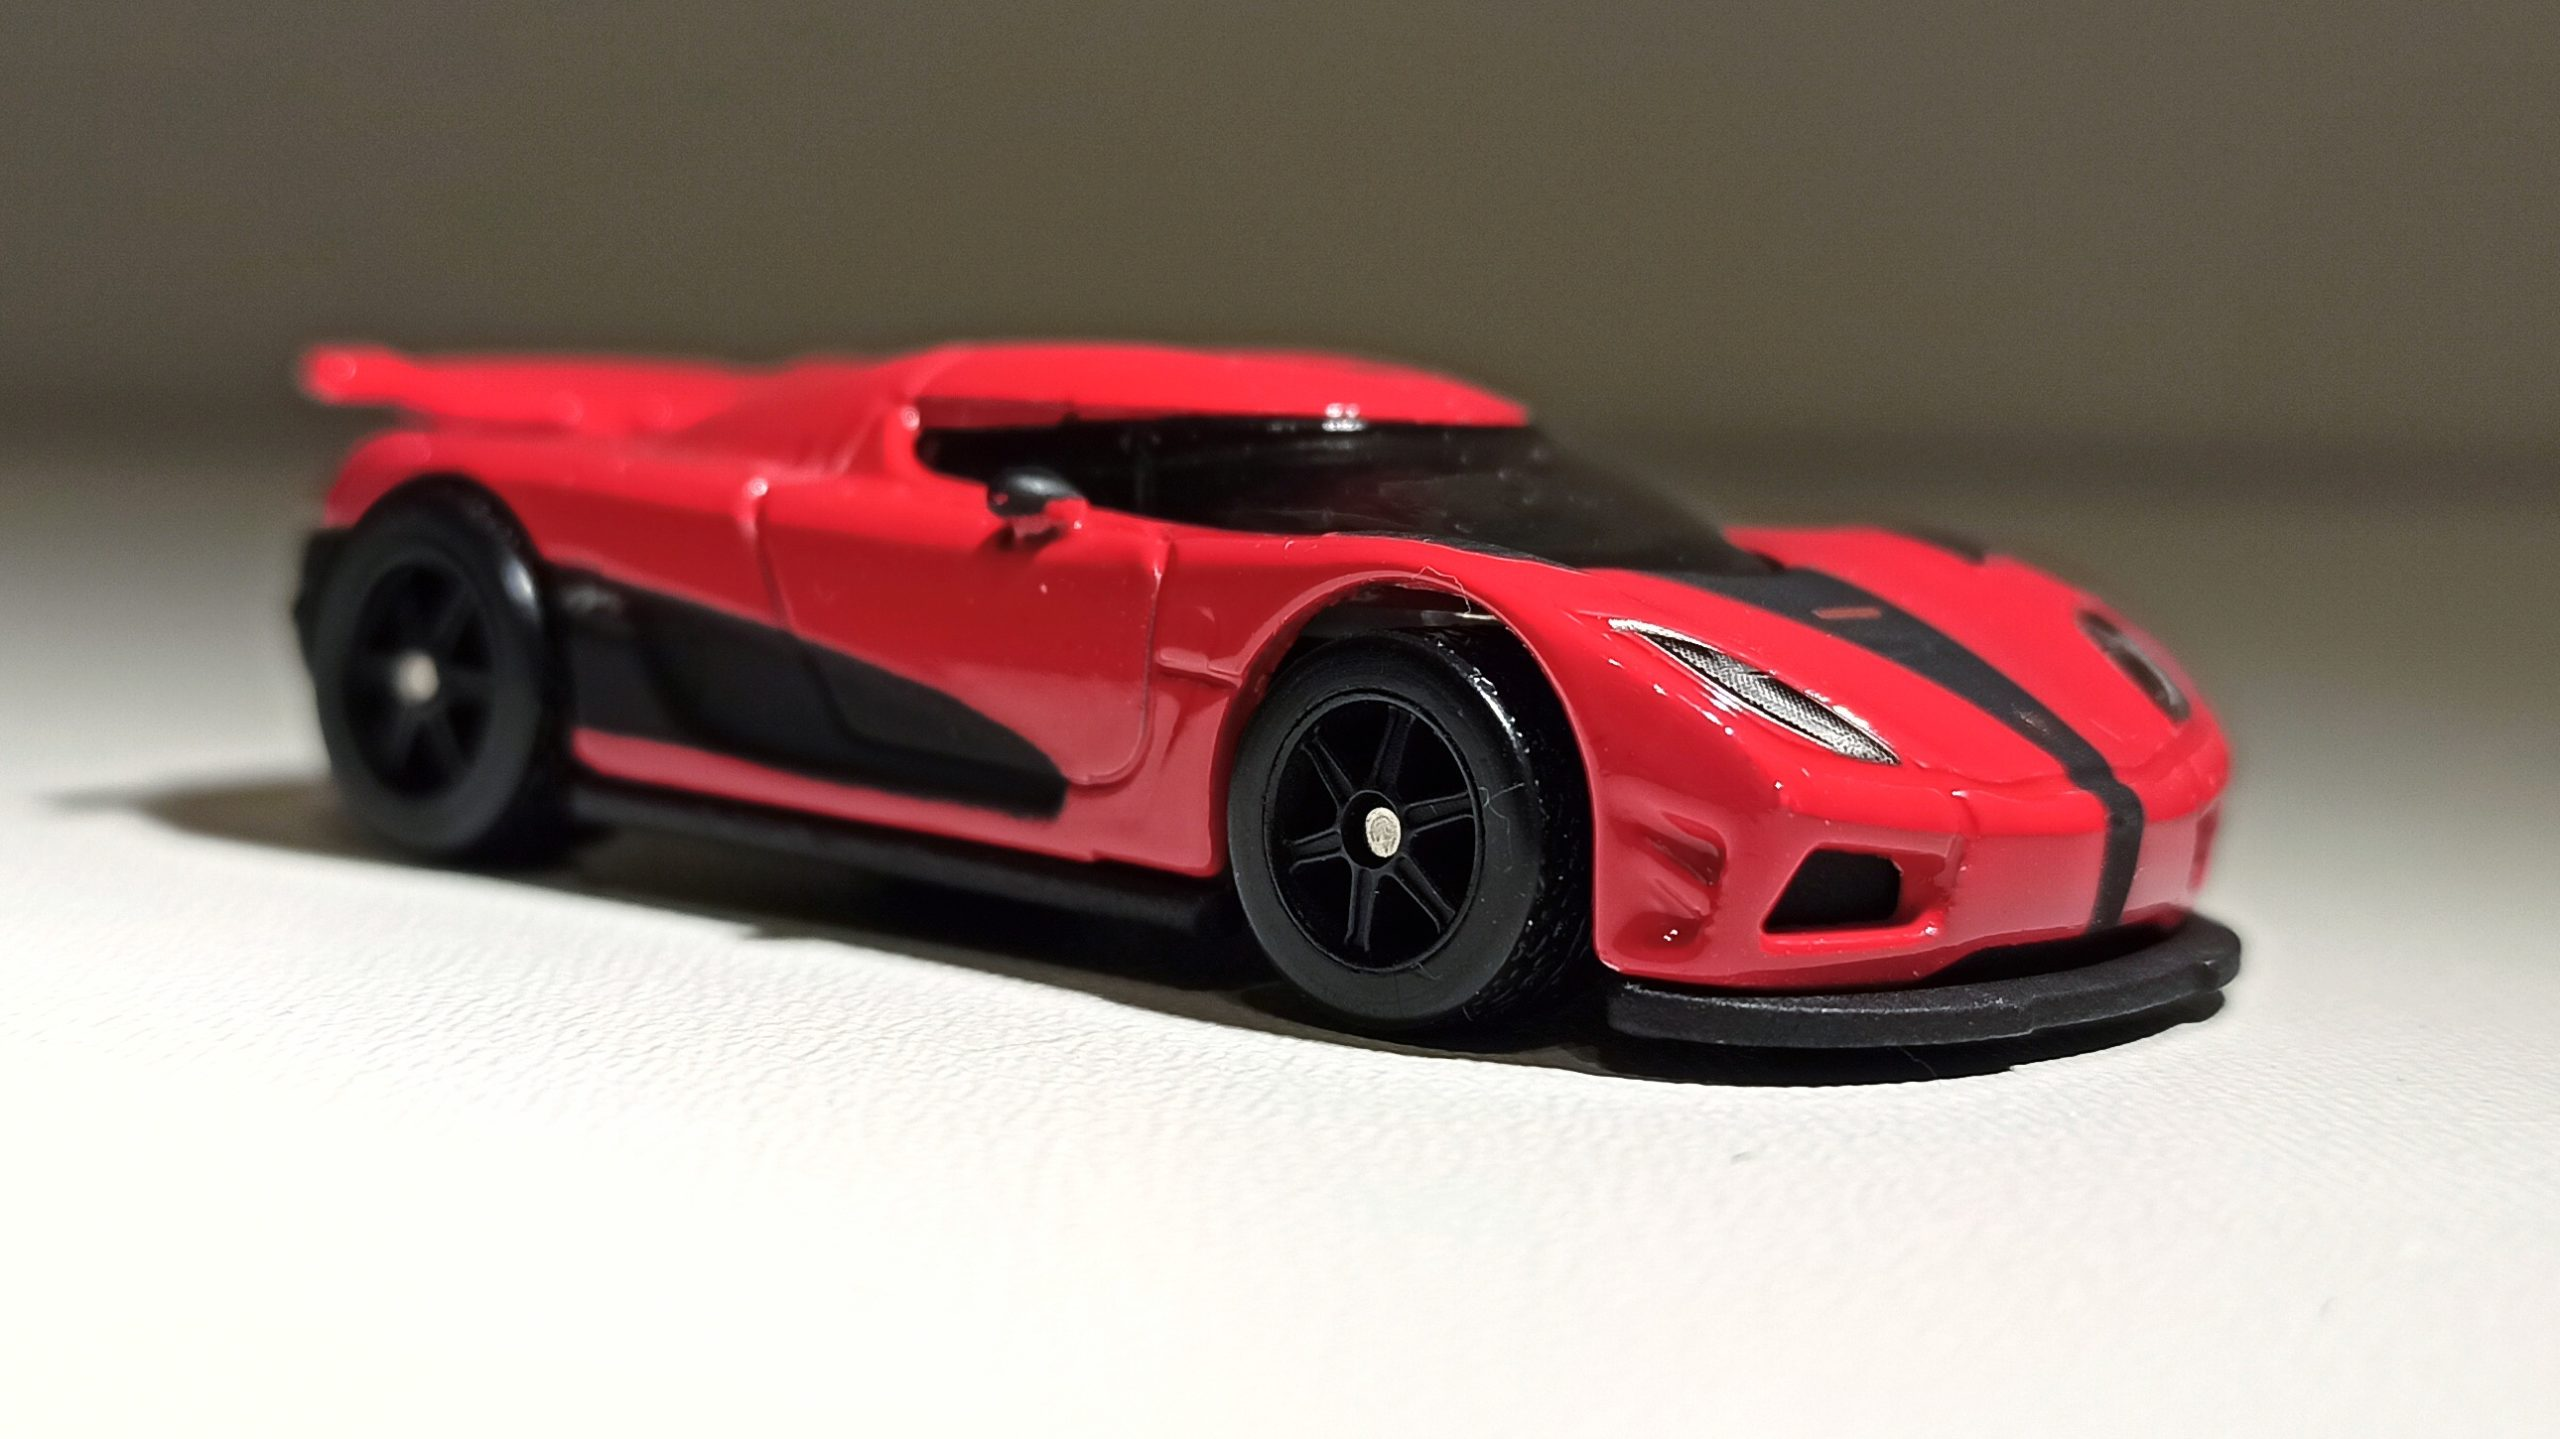 Hot Wheels Entertainment Koenigsegg Agera R (BDT86) 2014 Need for Speed red side angle